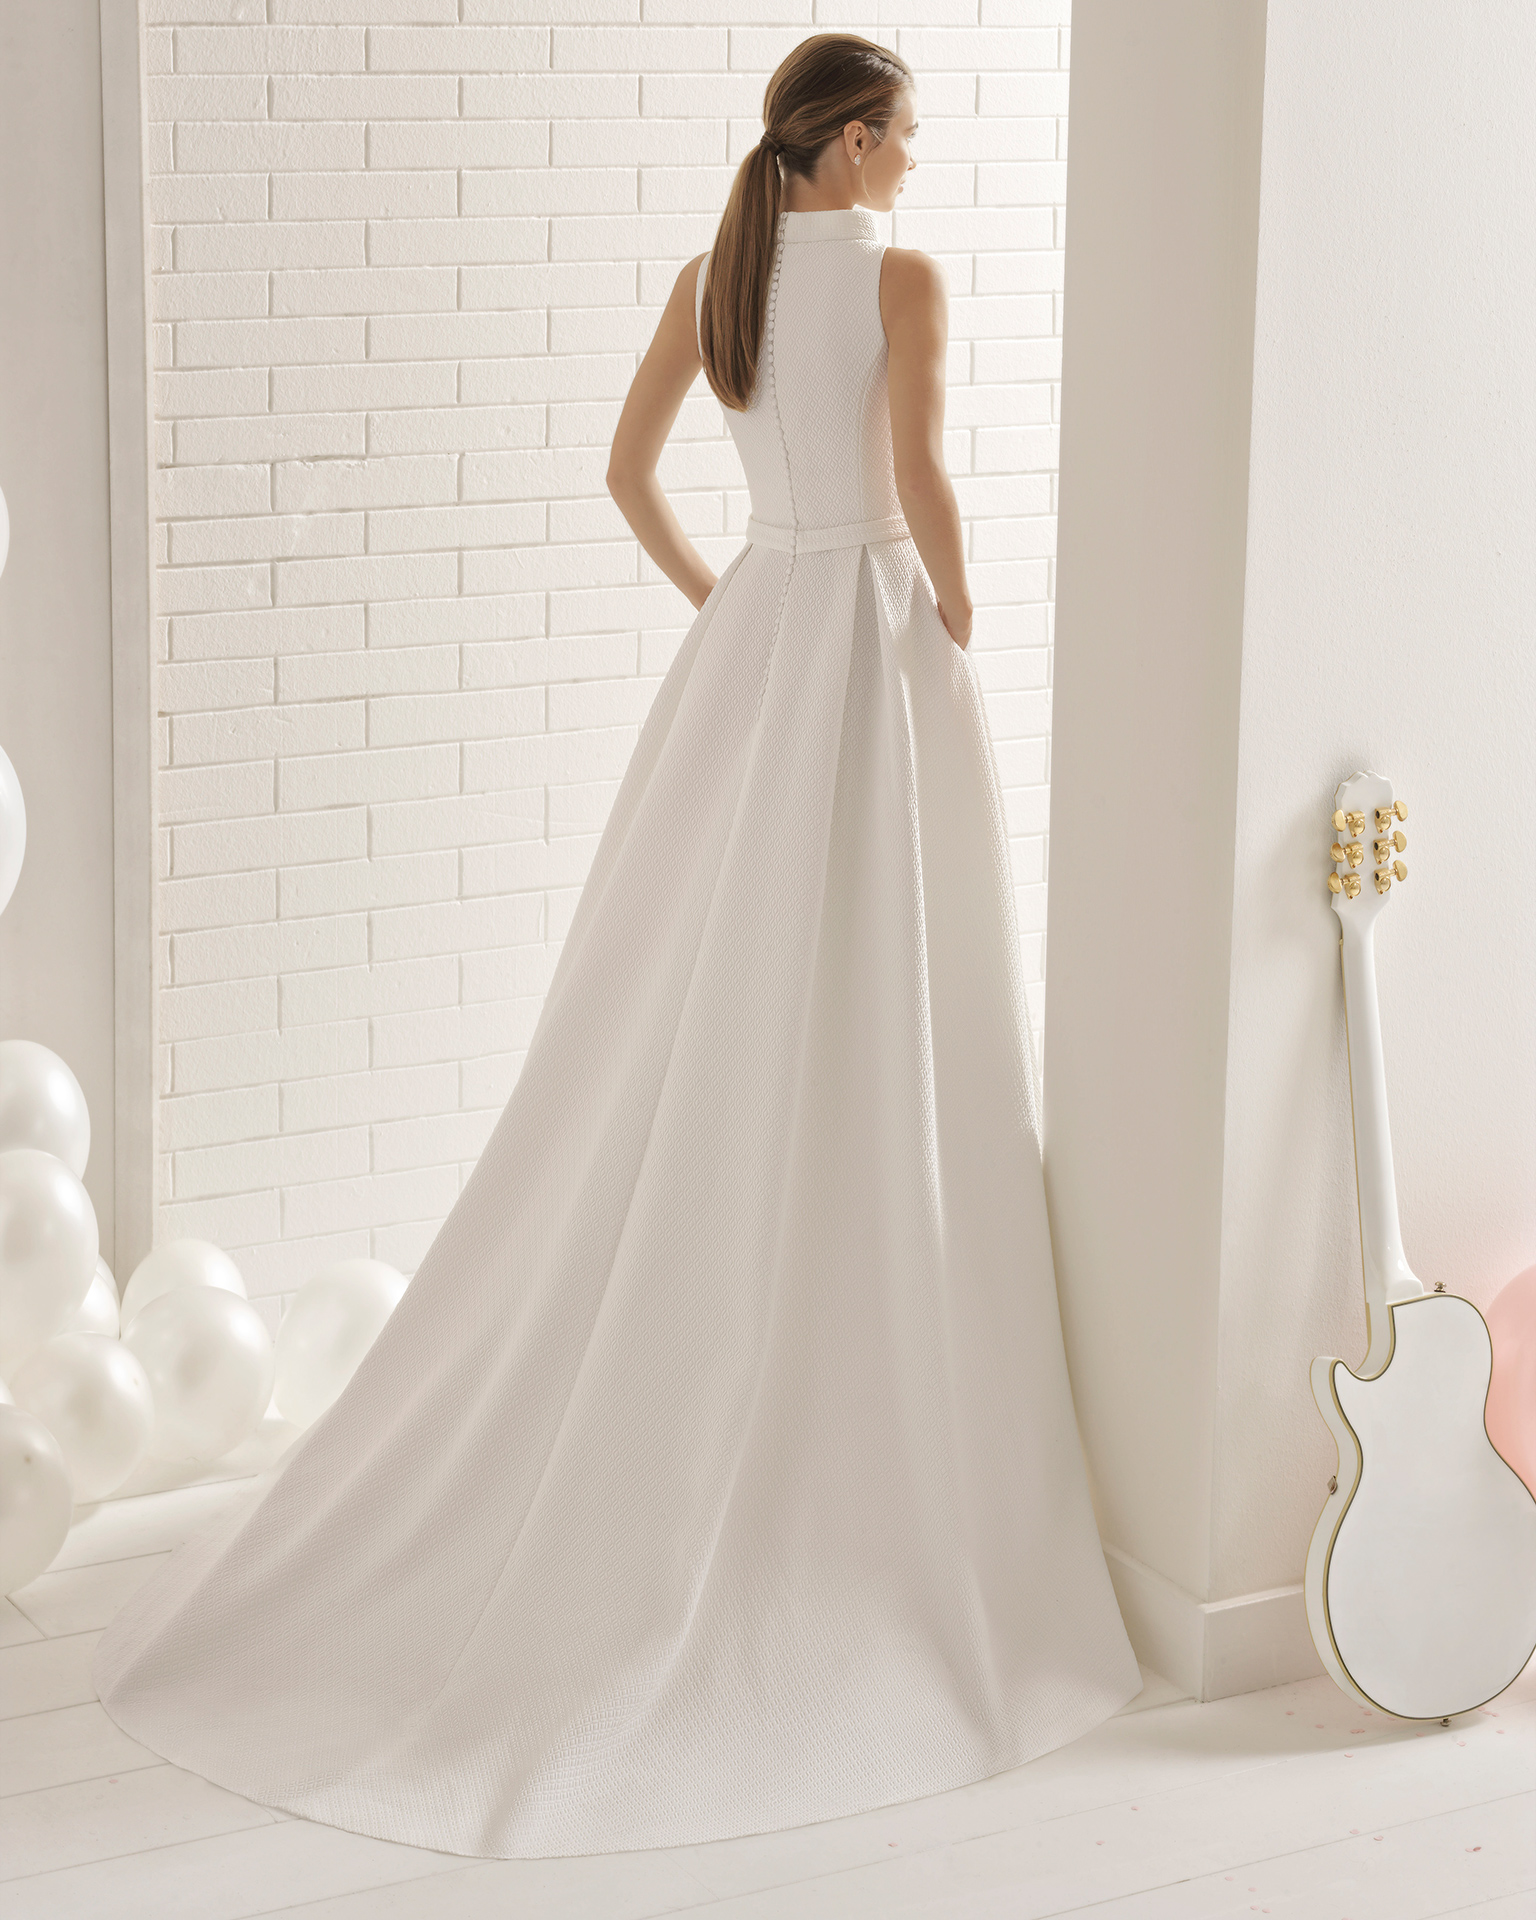 Classic-style cloqué wedding dress with bateau neckline, pockets and bow at waist.